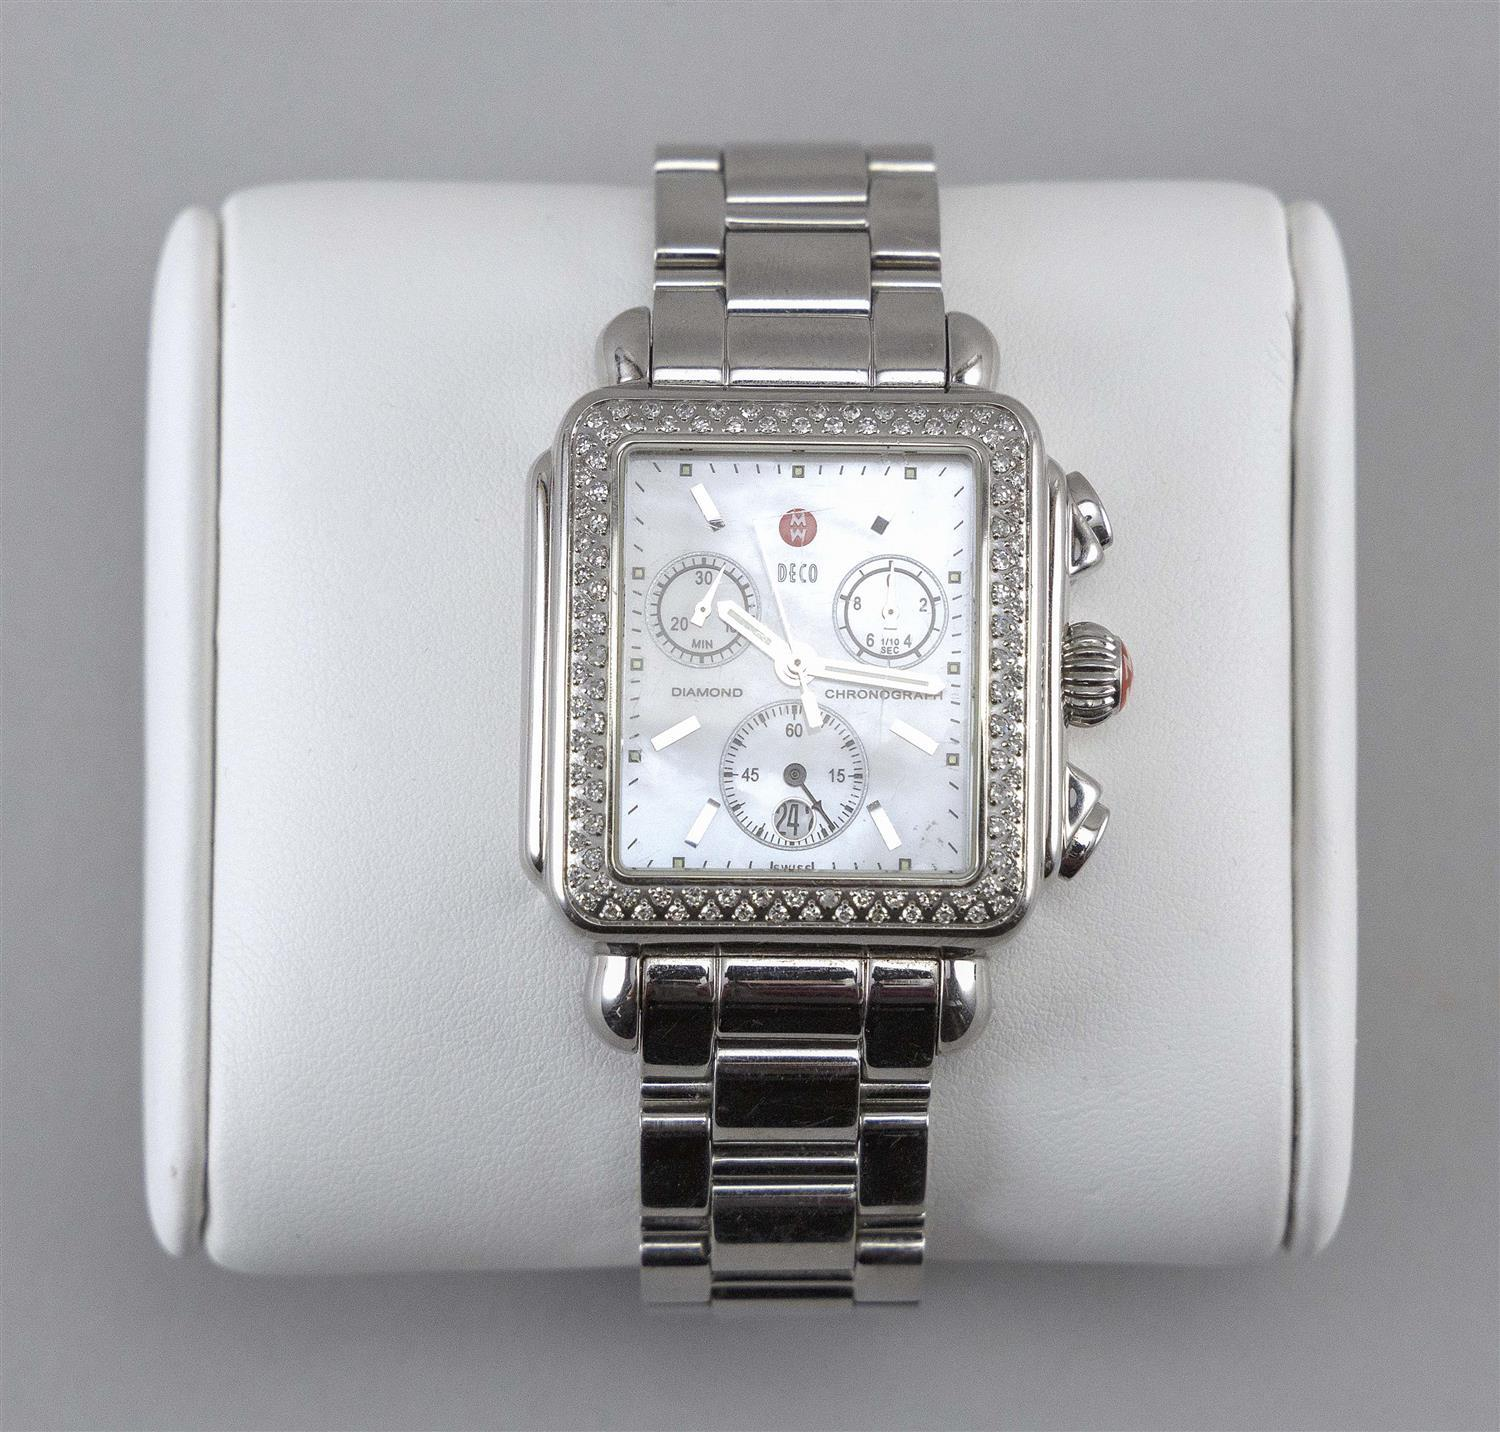 MICHELE DECO DIAMOND AND STAINLESS STEEL LADY'S WRIST WATCH Mother-of-pearl dial with stainless steel sticks, three subdials and dat..